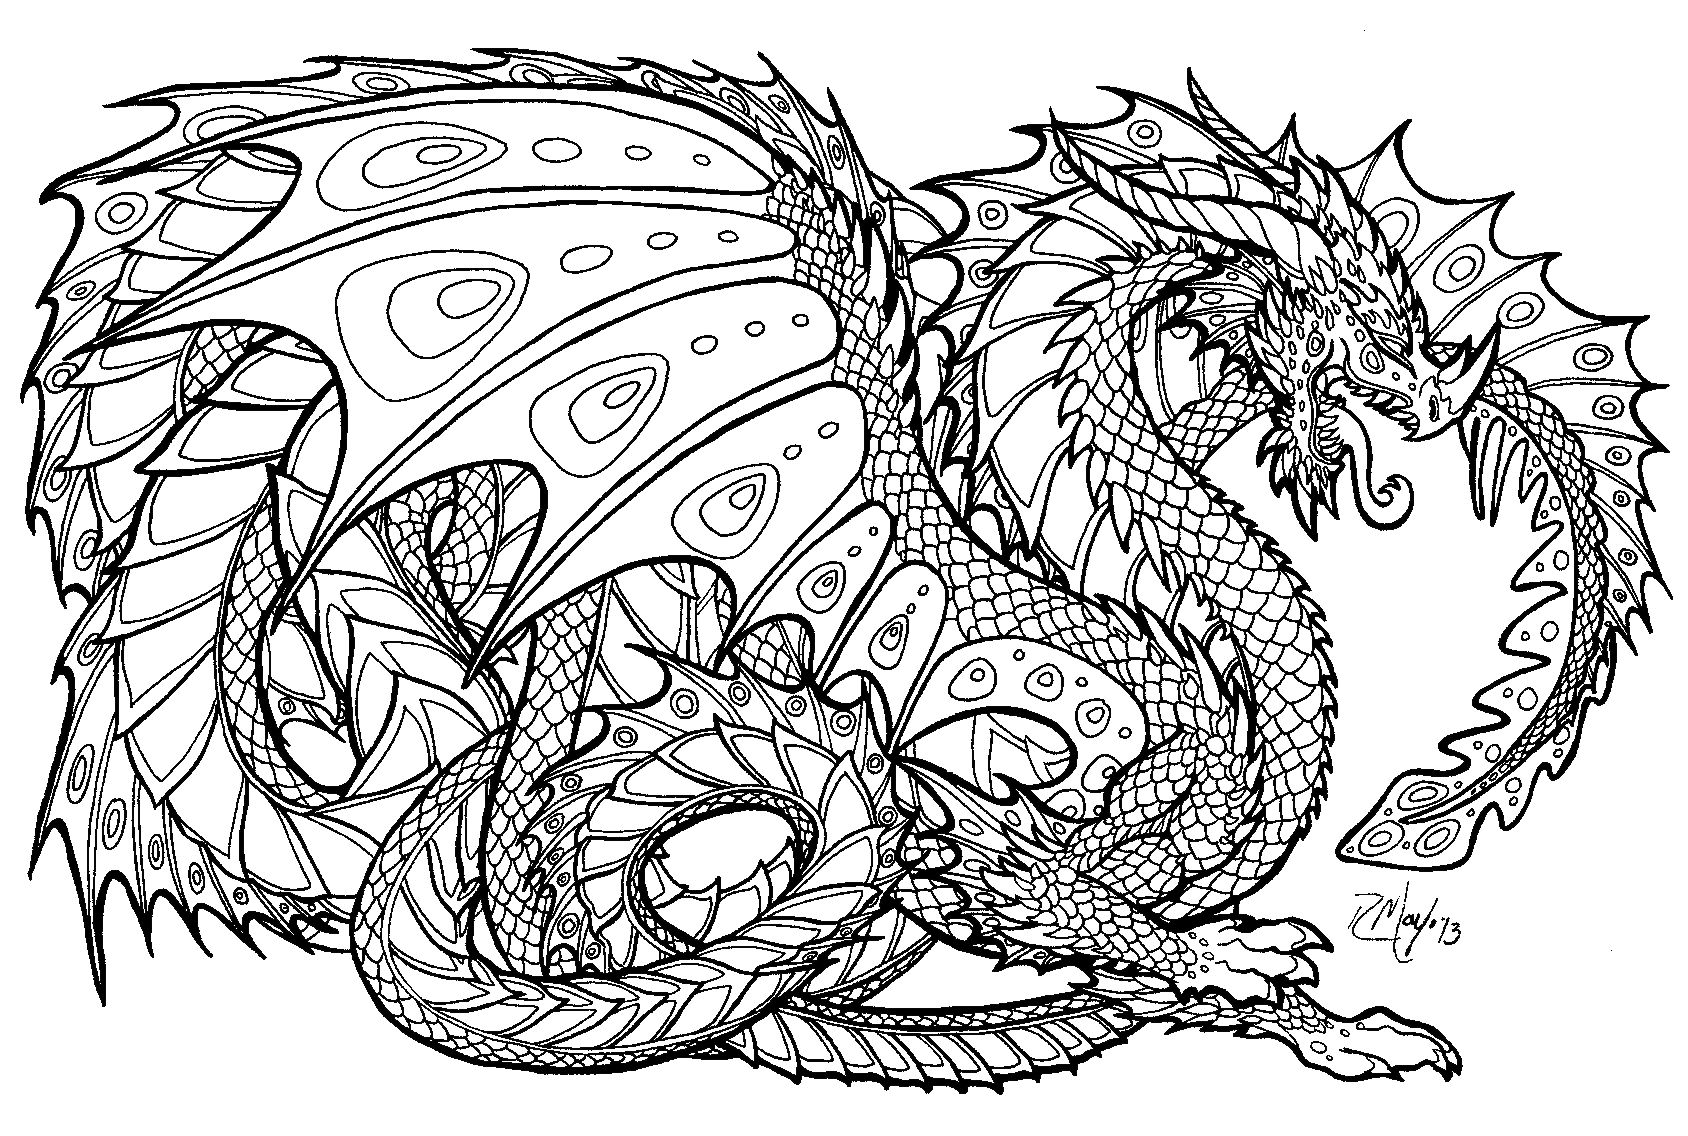 adult coloring pages dragons free printable coloring pages for adults advanced dragons   Google  adult coloring pages dragons